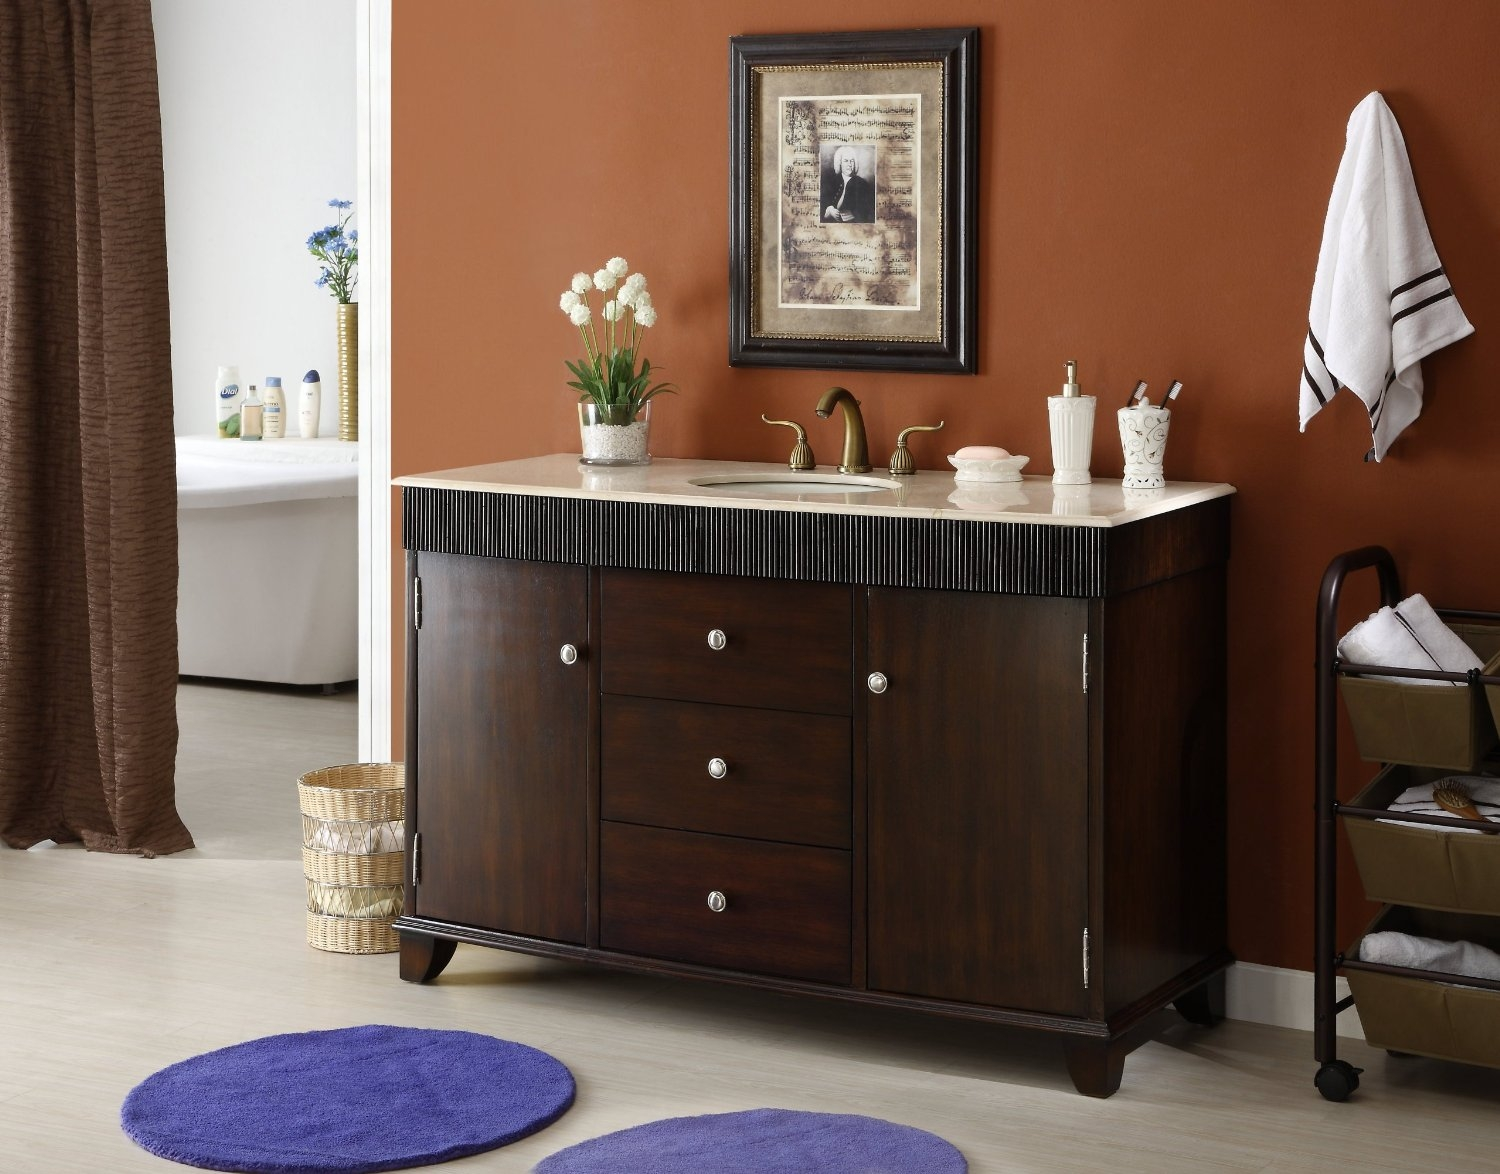 Permalink to 54 Bathroom Vanity Cabinet